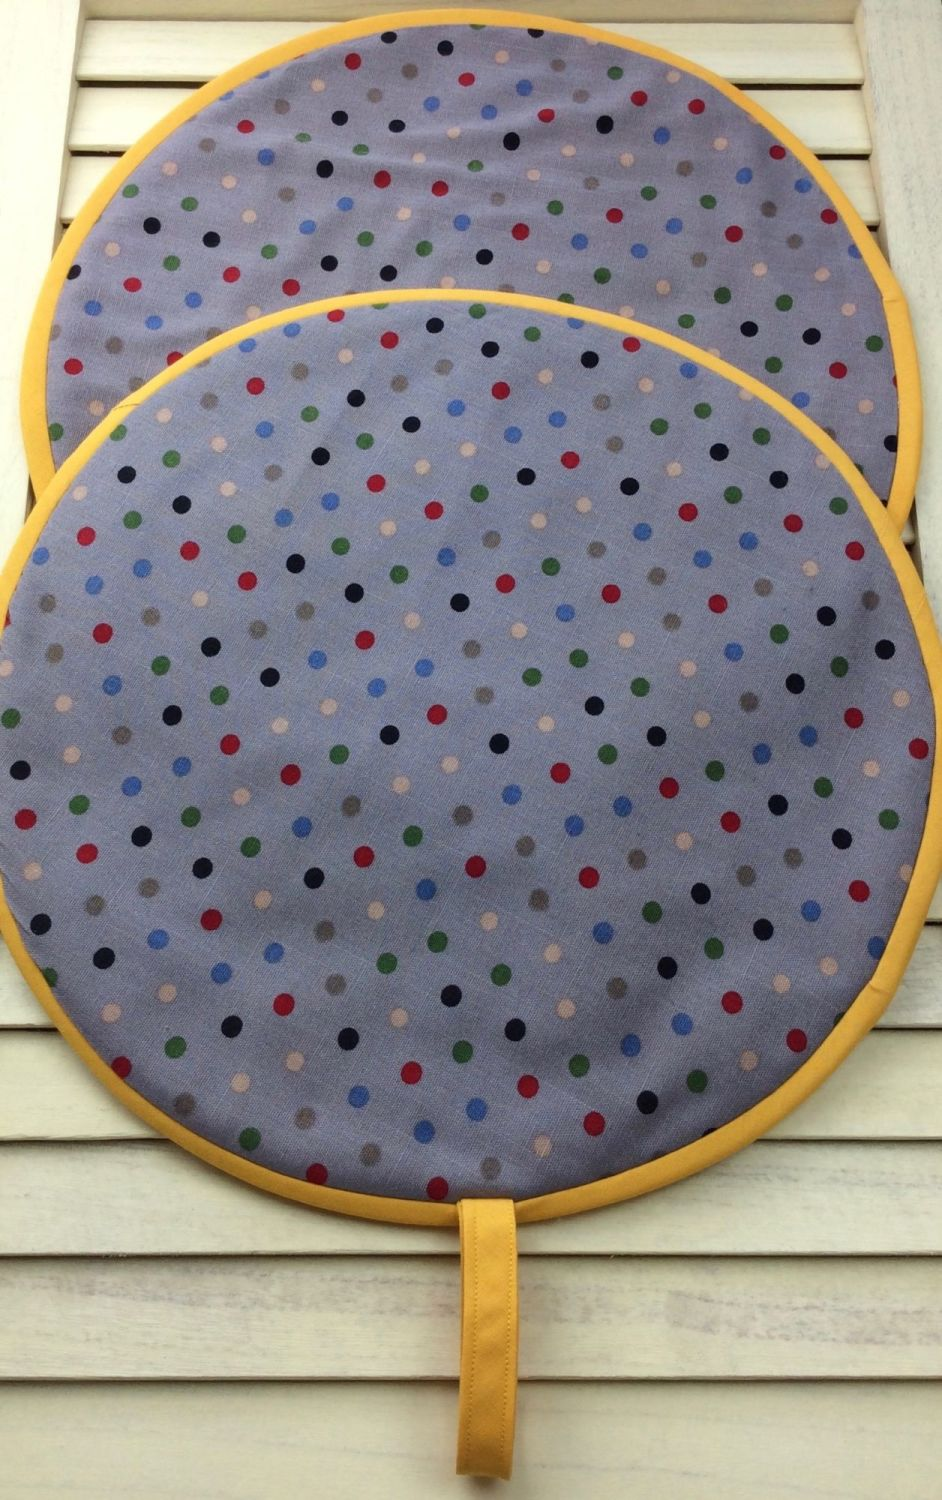 Pair of Polka Dot Aga Lid Covers